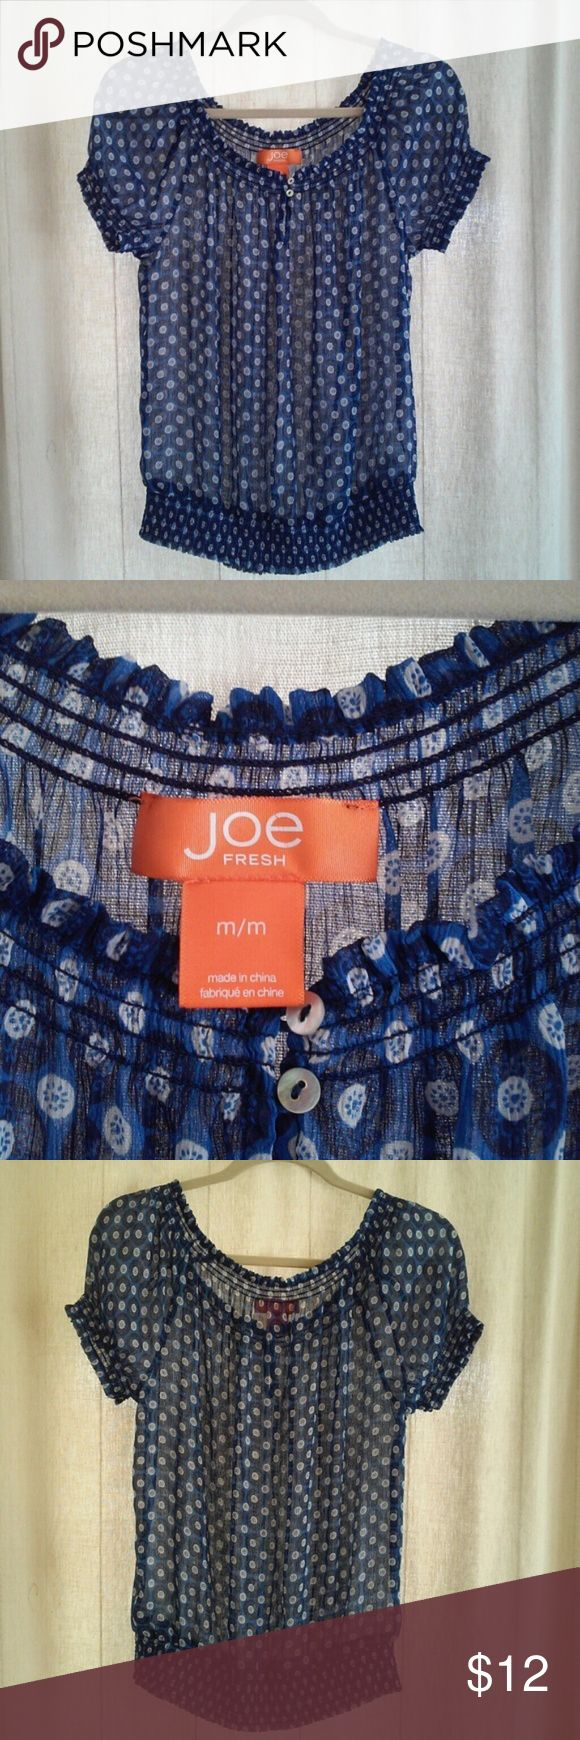 Sheer blouse by Joe Fresh size M nwot Very nice blue sheer blouse with elastic at waist, neckline, and sleeves. Joe Fresh, size medium, new without tags.  if concerned about size,  please ask for measurements before purchasing....I want you to LOVE your new blouse! Joe Fresh Tops Blouses